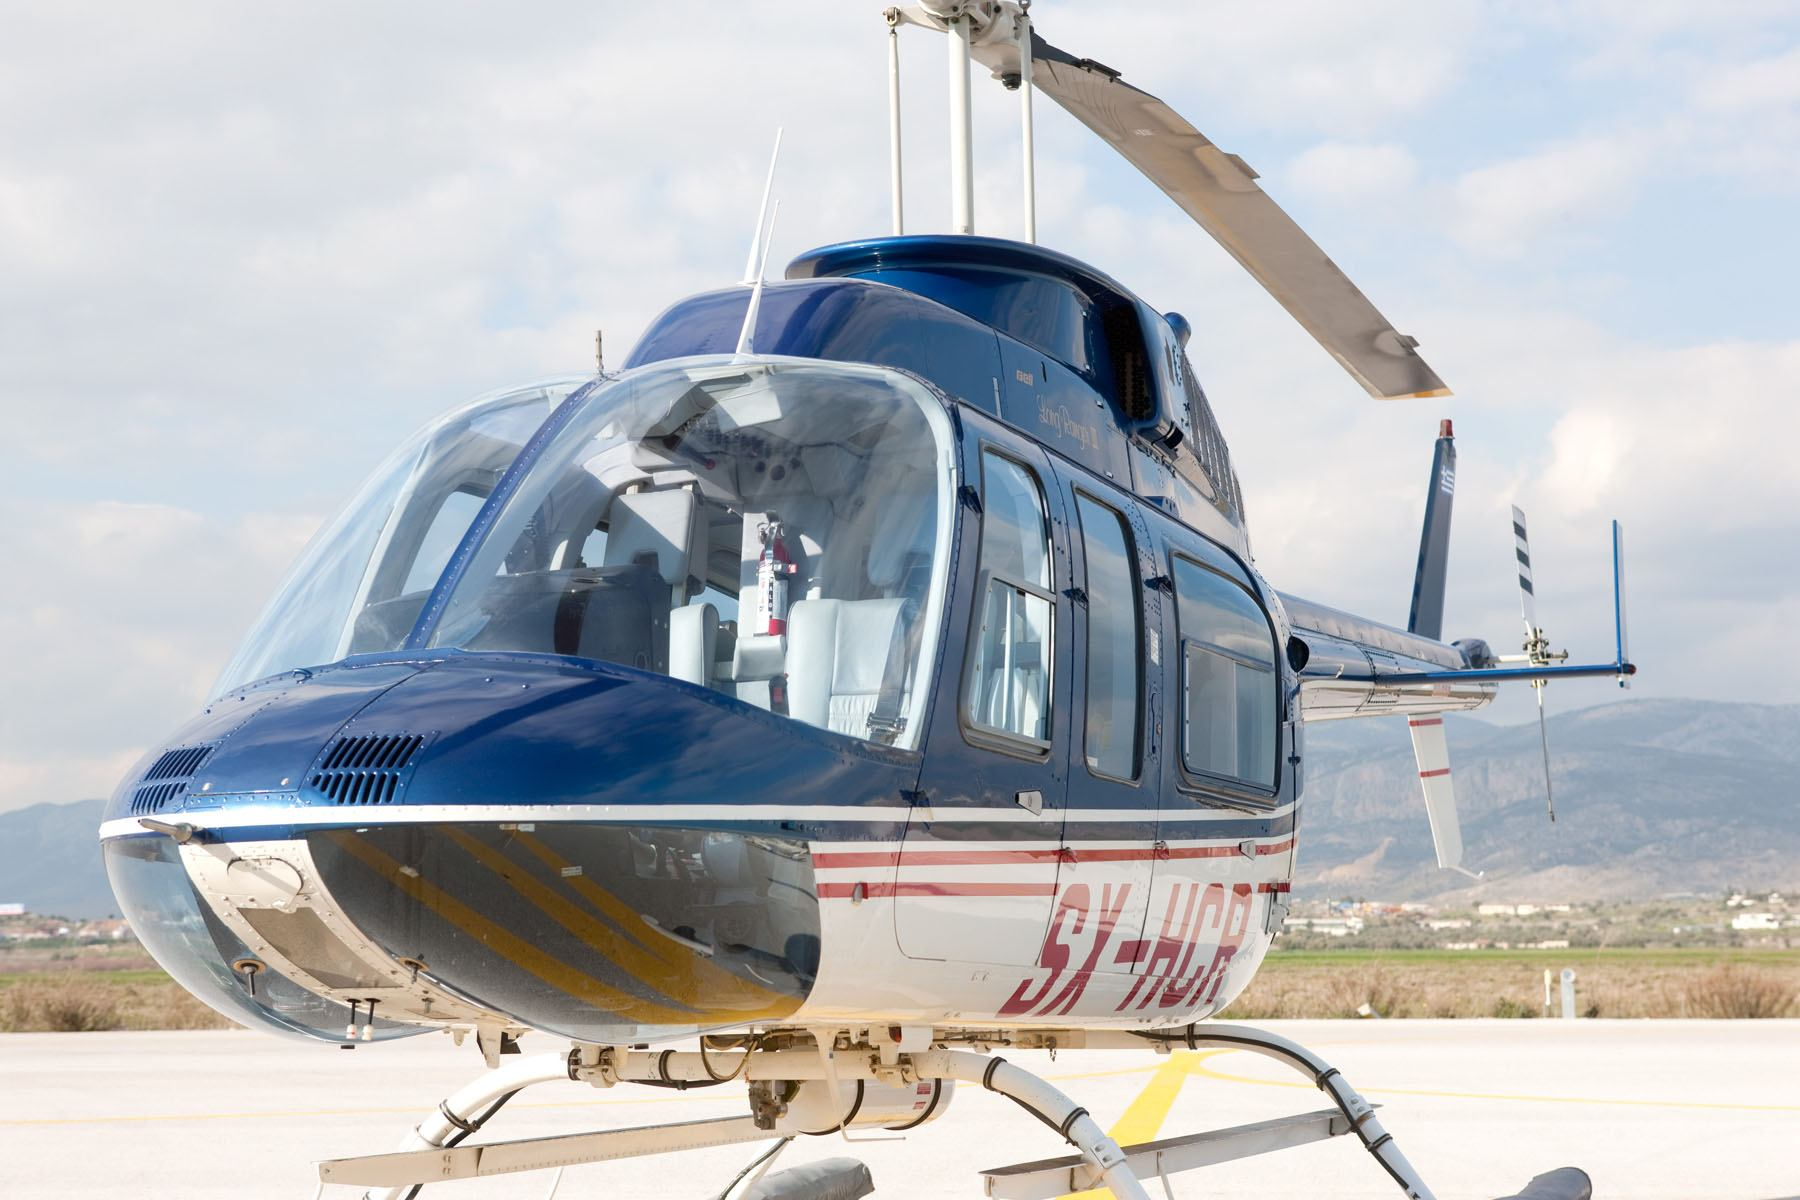 Bell 206L3 Long Ranger, Helicopter, helicopter transfer, vip helicopter transfer